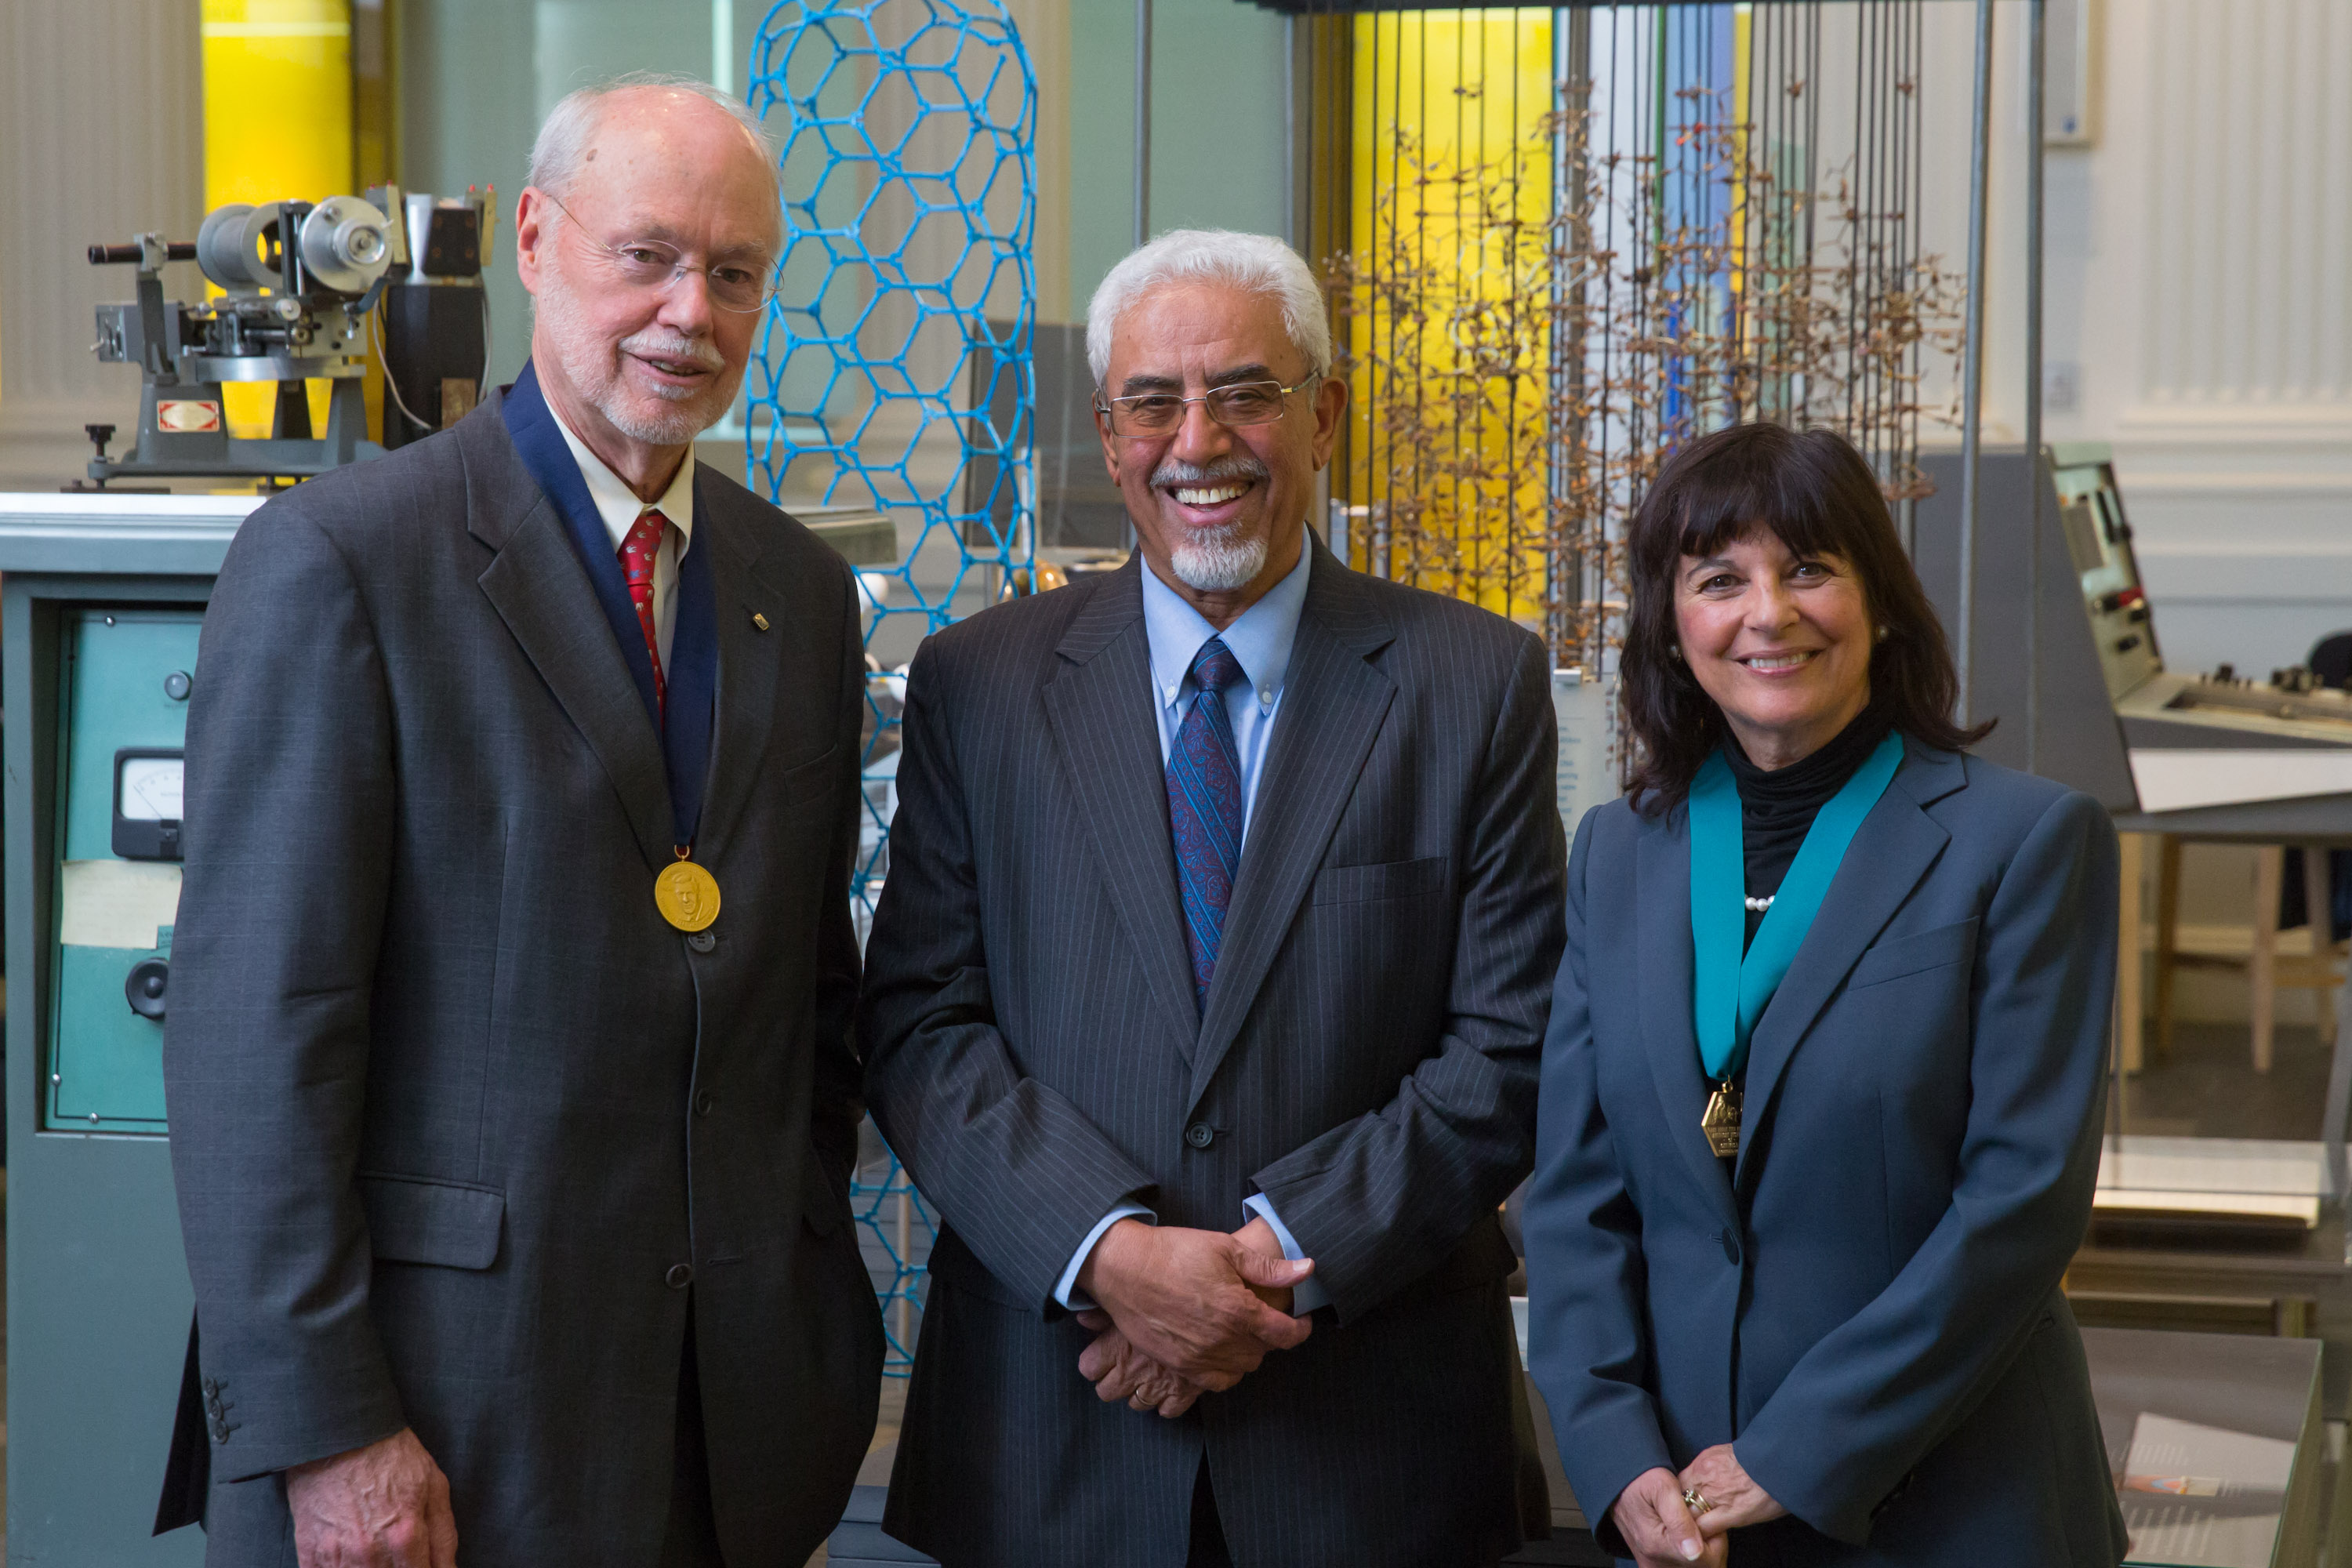 The 2015 Heritage Day medalists: Phillip Sharp, Abdulaziz Al-Zamil, and Jacqueline Barton, who won the AIC Gold Medal.